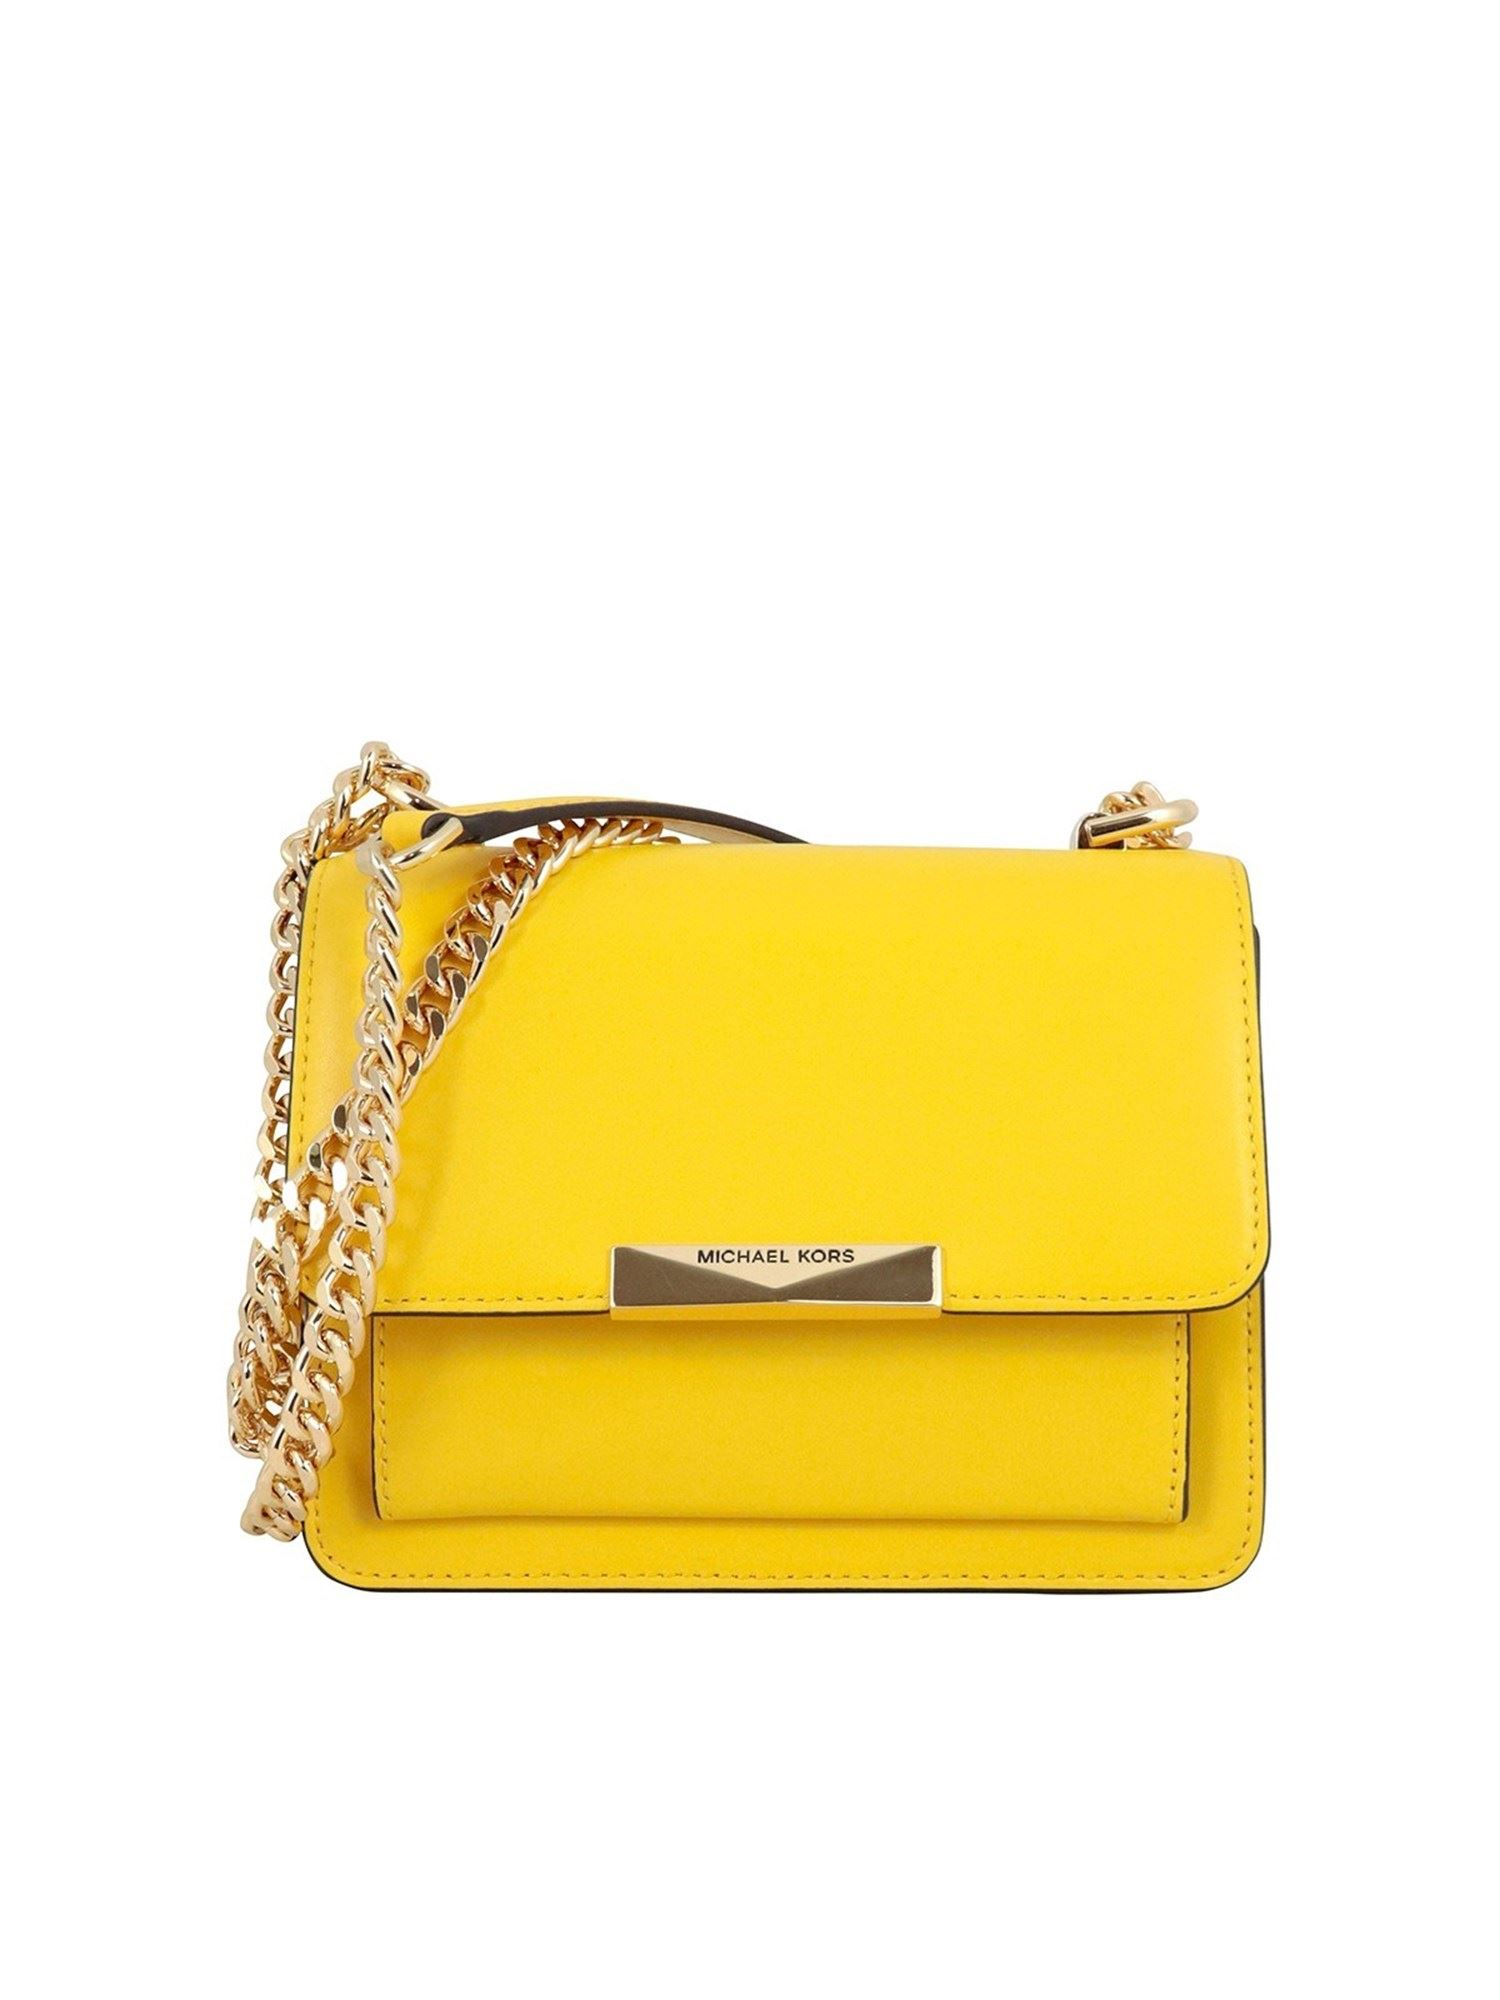 Michael Kors JADE XS GRAINY LEATHER CROSS BODY BAG IN YELLOW